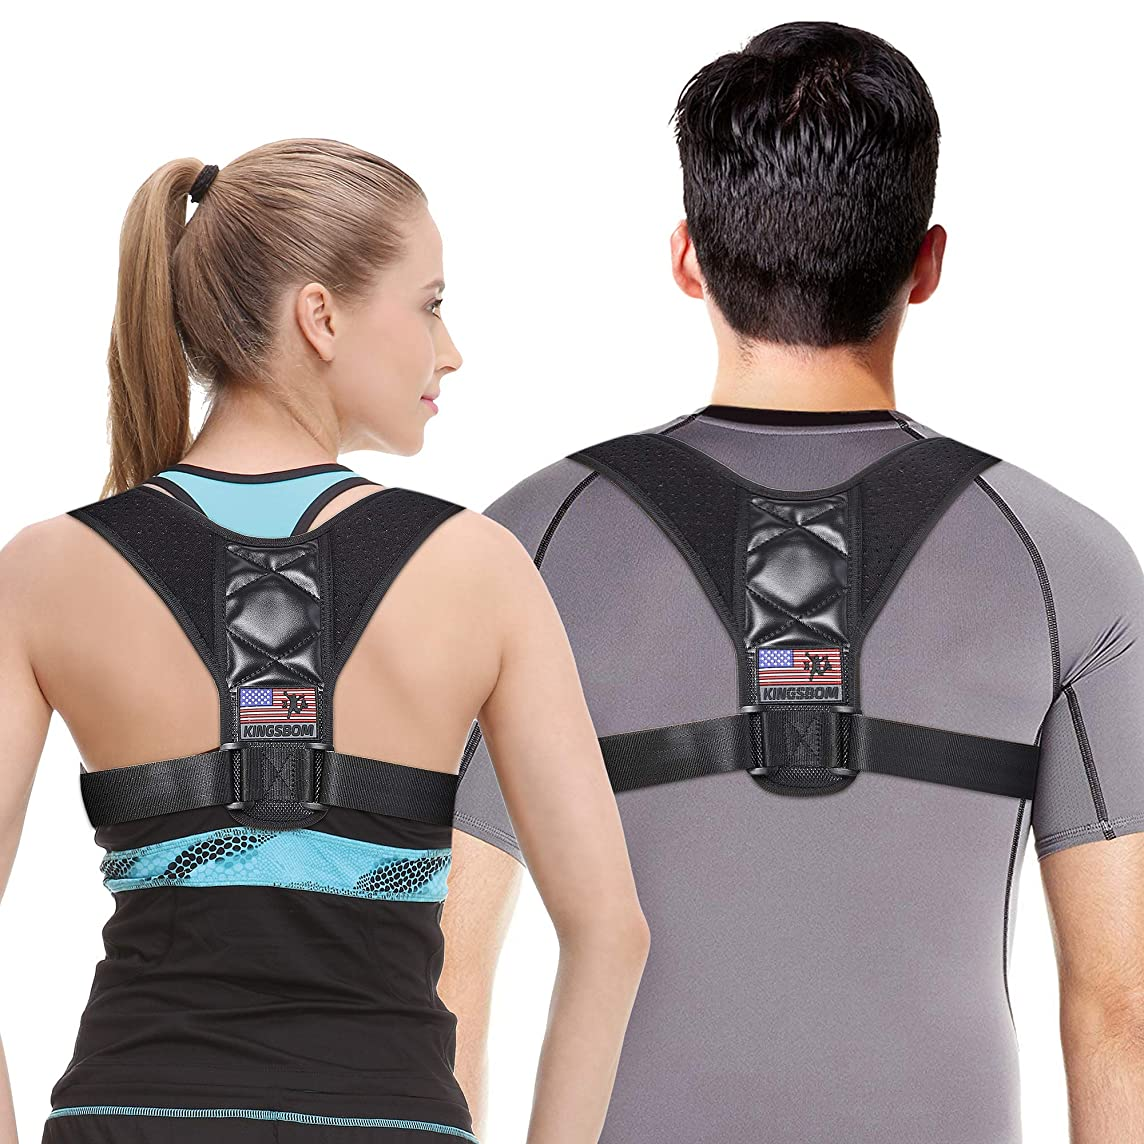 Back Posture Corrector for Women and Men, Upper Posture Back Brace for Correct Posture, Prevent Humpback and Provide Pain Relief from Neck,Back, Shoulder and Bad Posture (Black, M(Chest 27